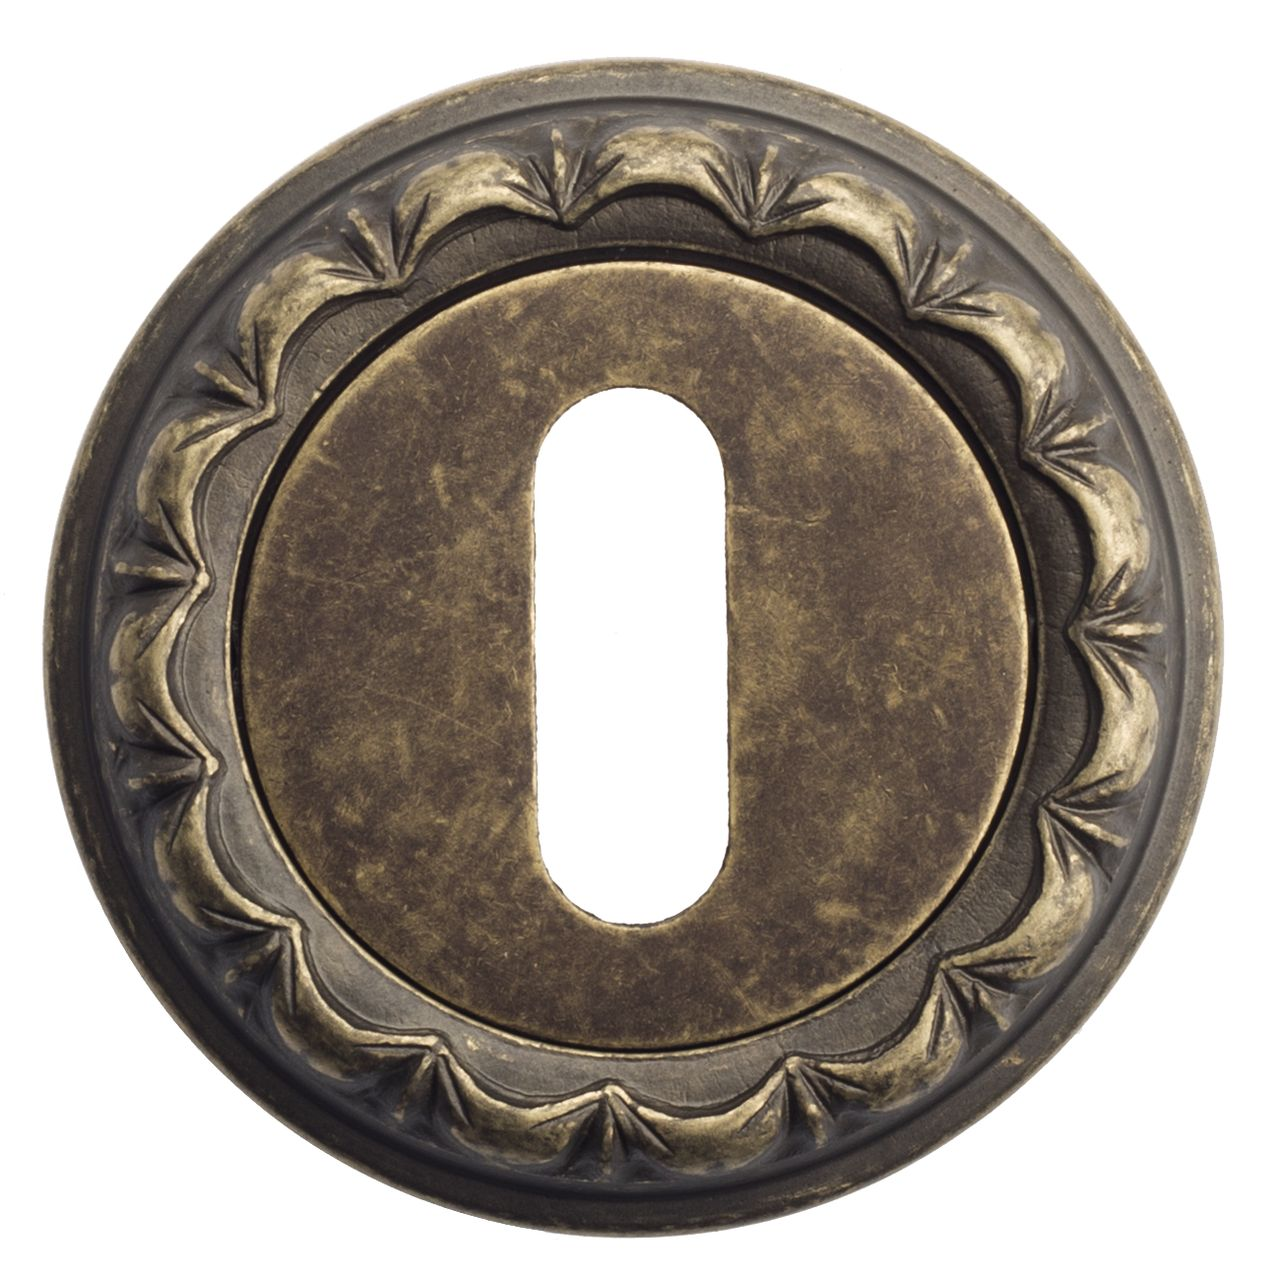 Keyhole Escutcheon Venezia KEY-1 D2 Antique Bronze